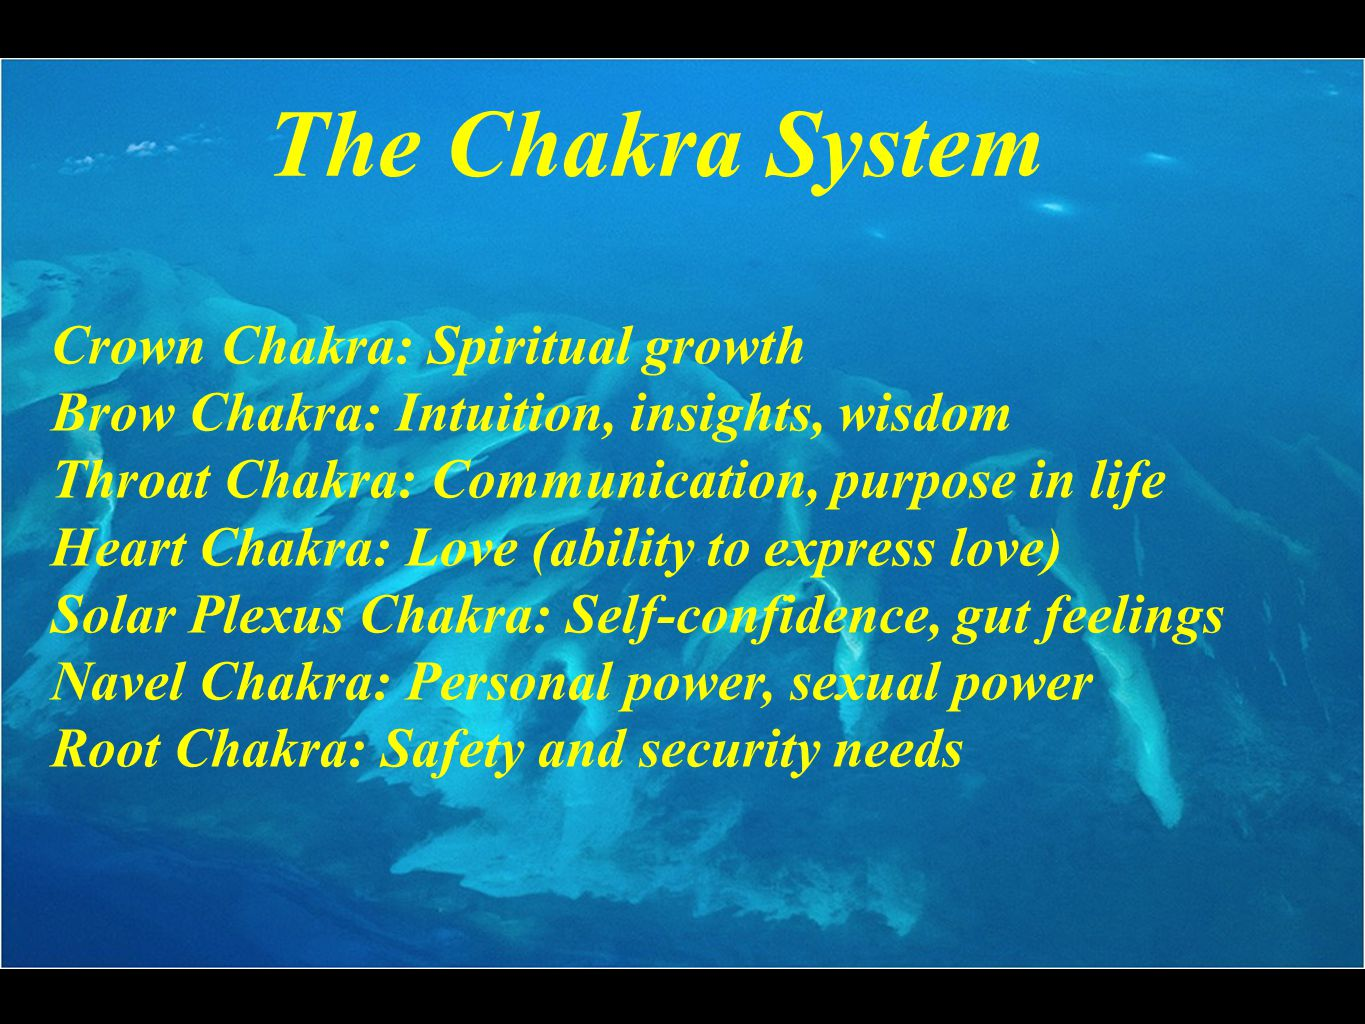 Crown Chakra: Spiritual growth Brow Chakra: Intuition, insights, wisdom Throat Chakra: Communication, purpose in life Heart Chakra: Love (ability to express love) Solar Plexus Chakra: Self-confidence, gut feelings Navel Chakra: Personal power, sexual power Root Chakra: Safety and security needs